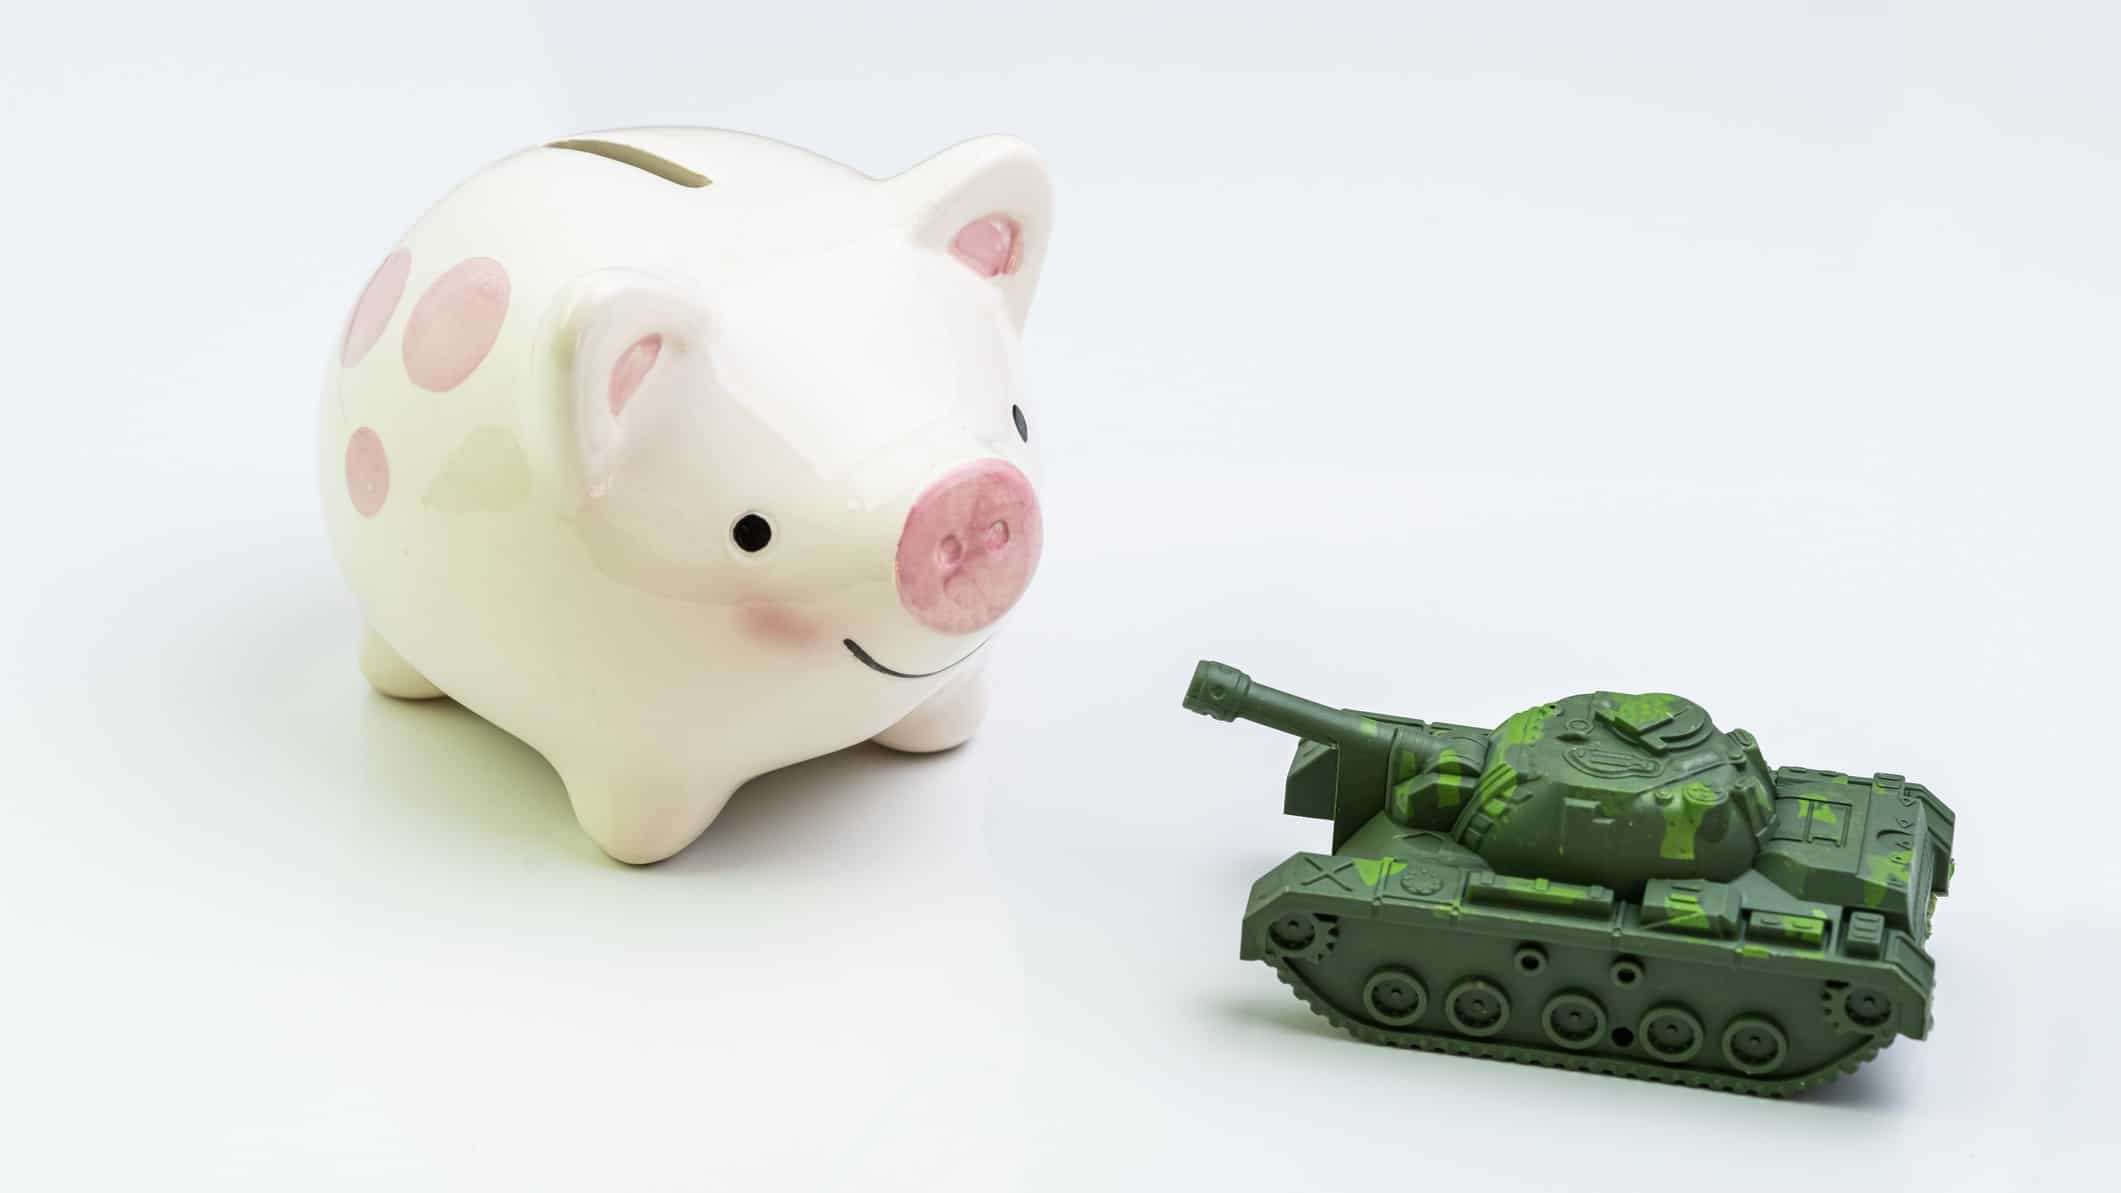 piggy bank next to miniature army tank